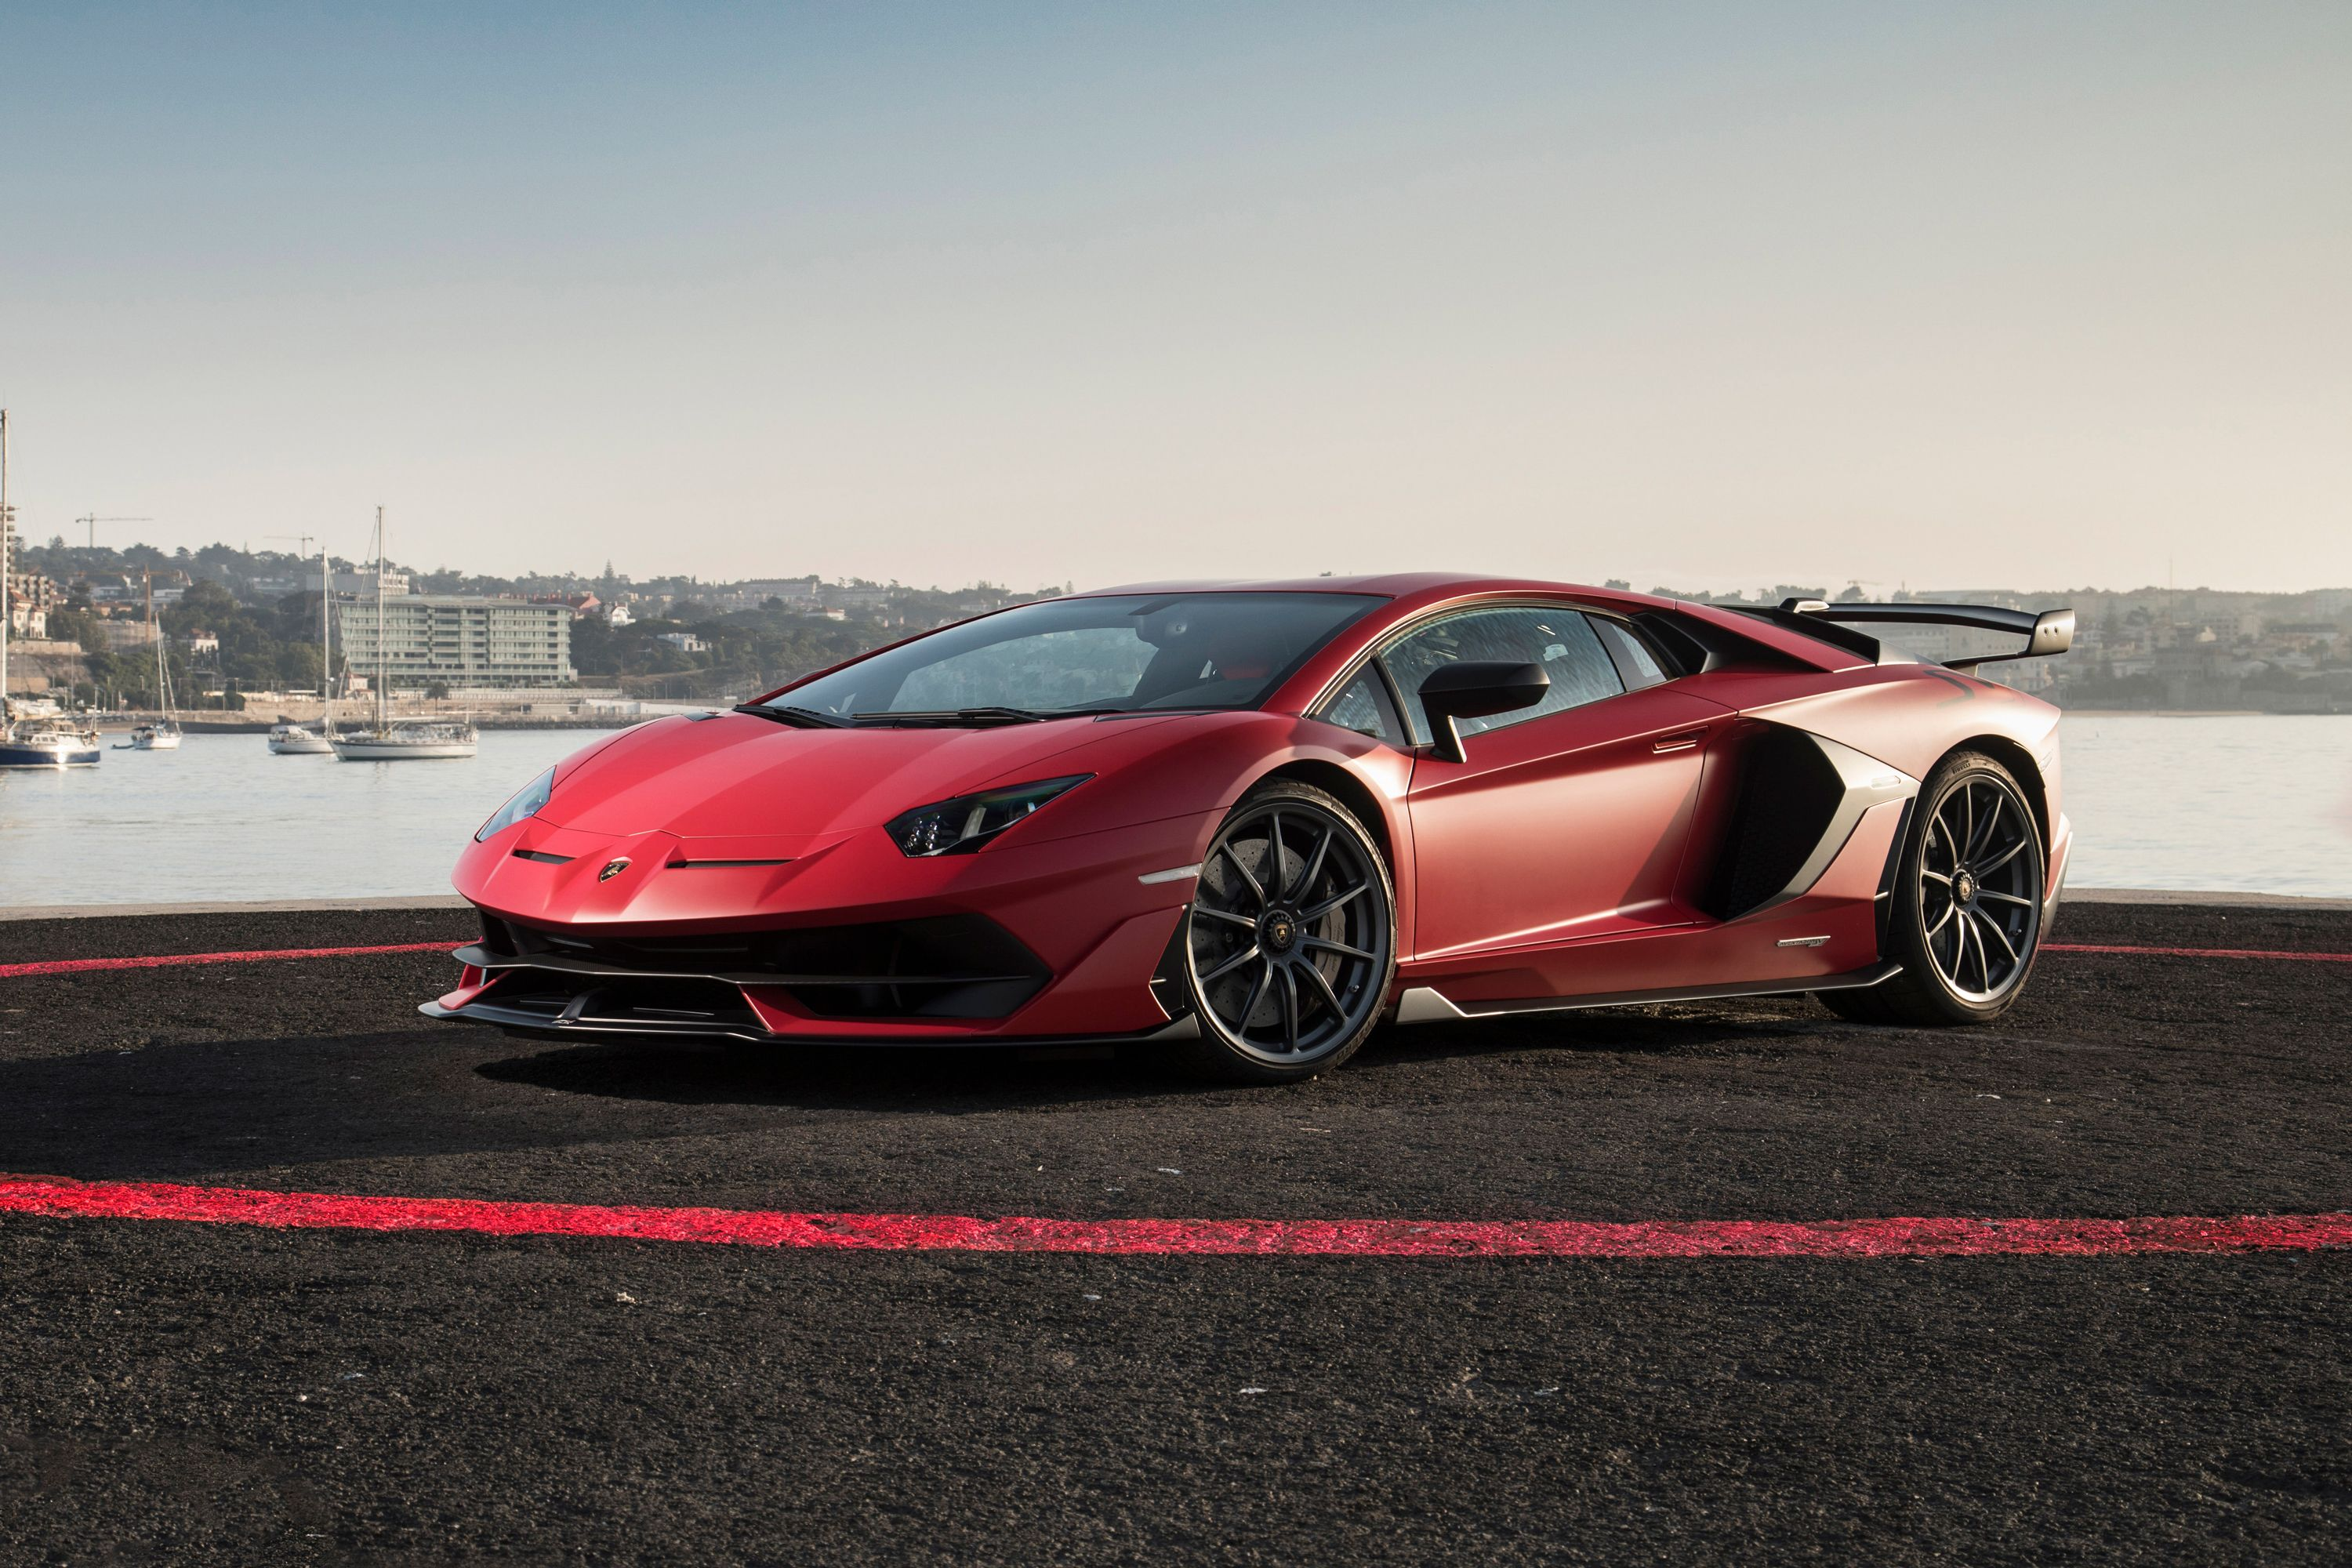 2021 Lamborghini Aventador Review Pricing And Specs